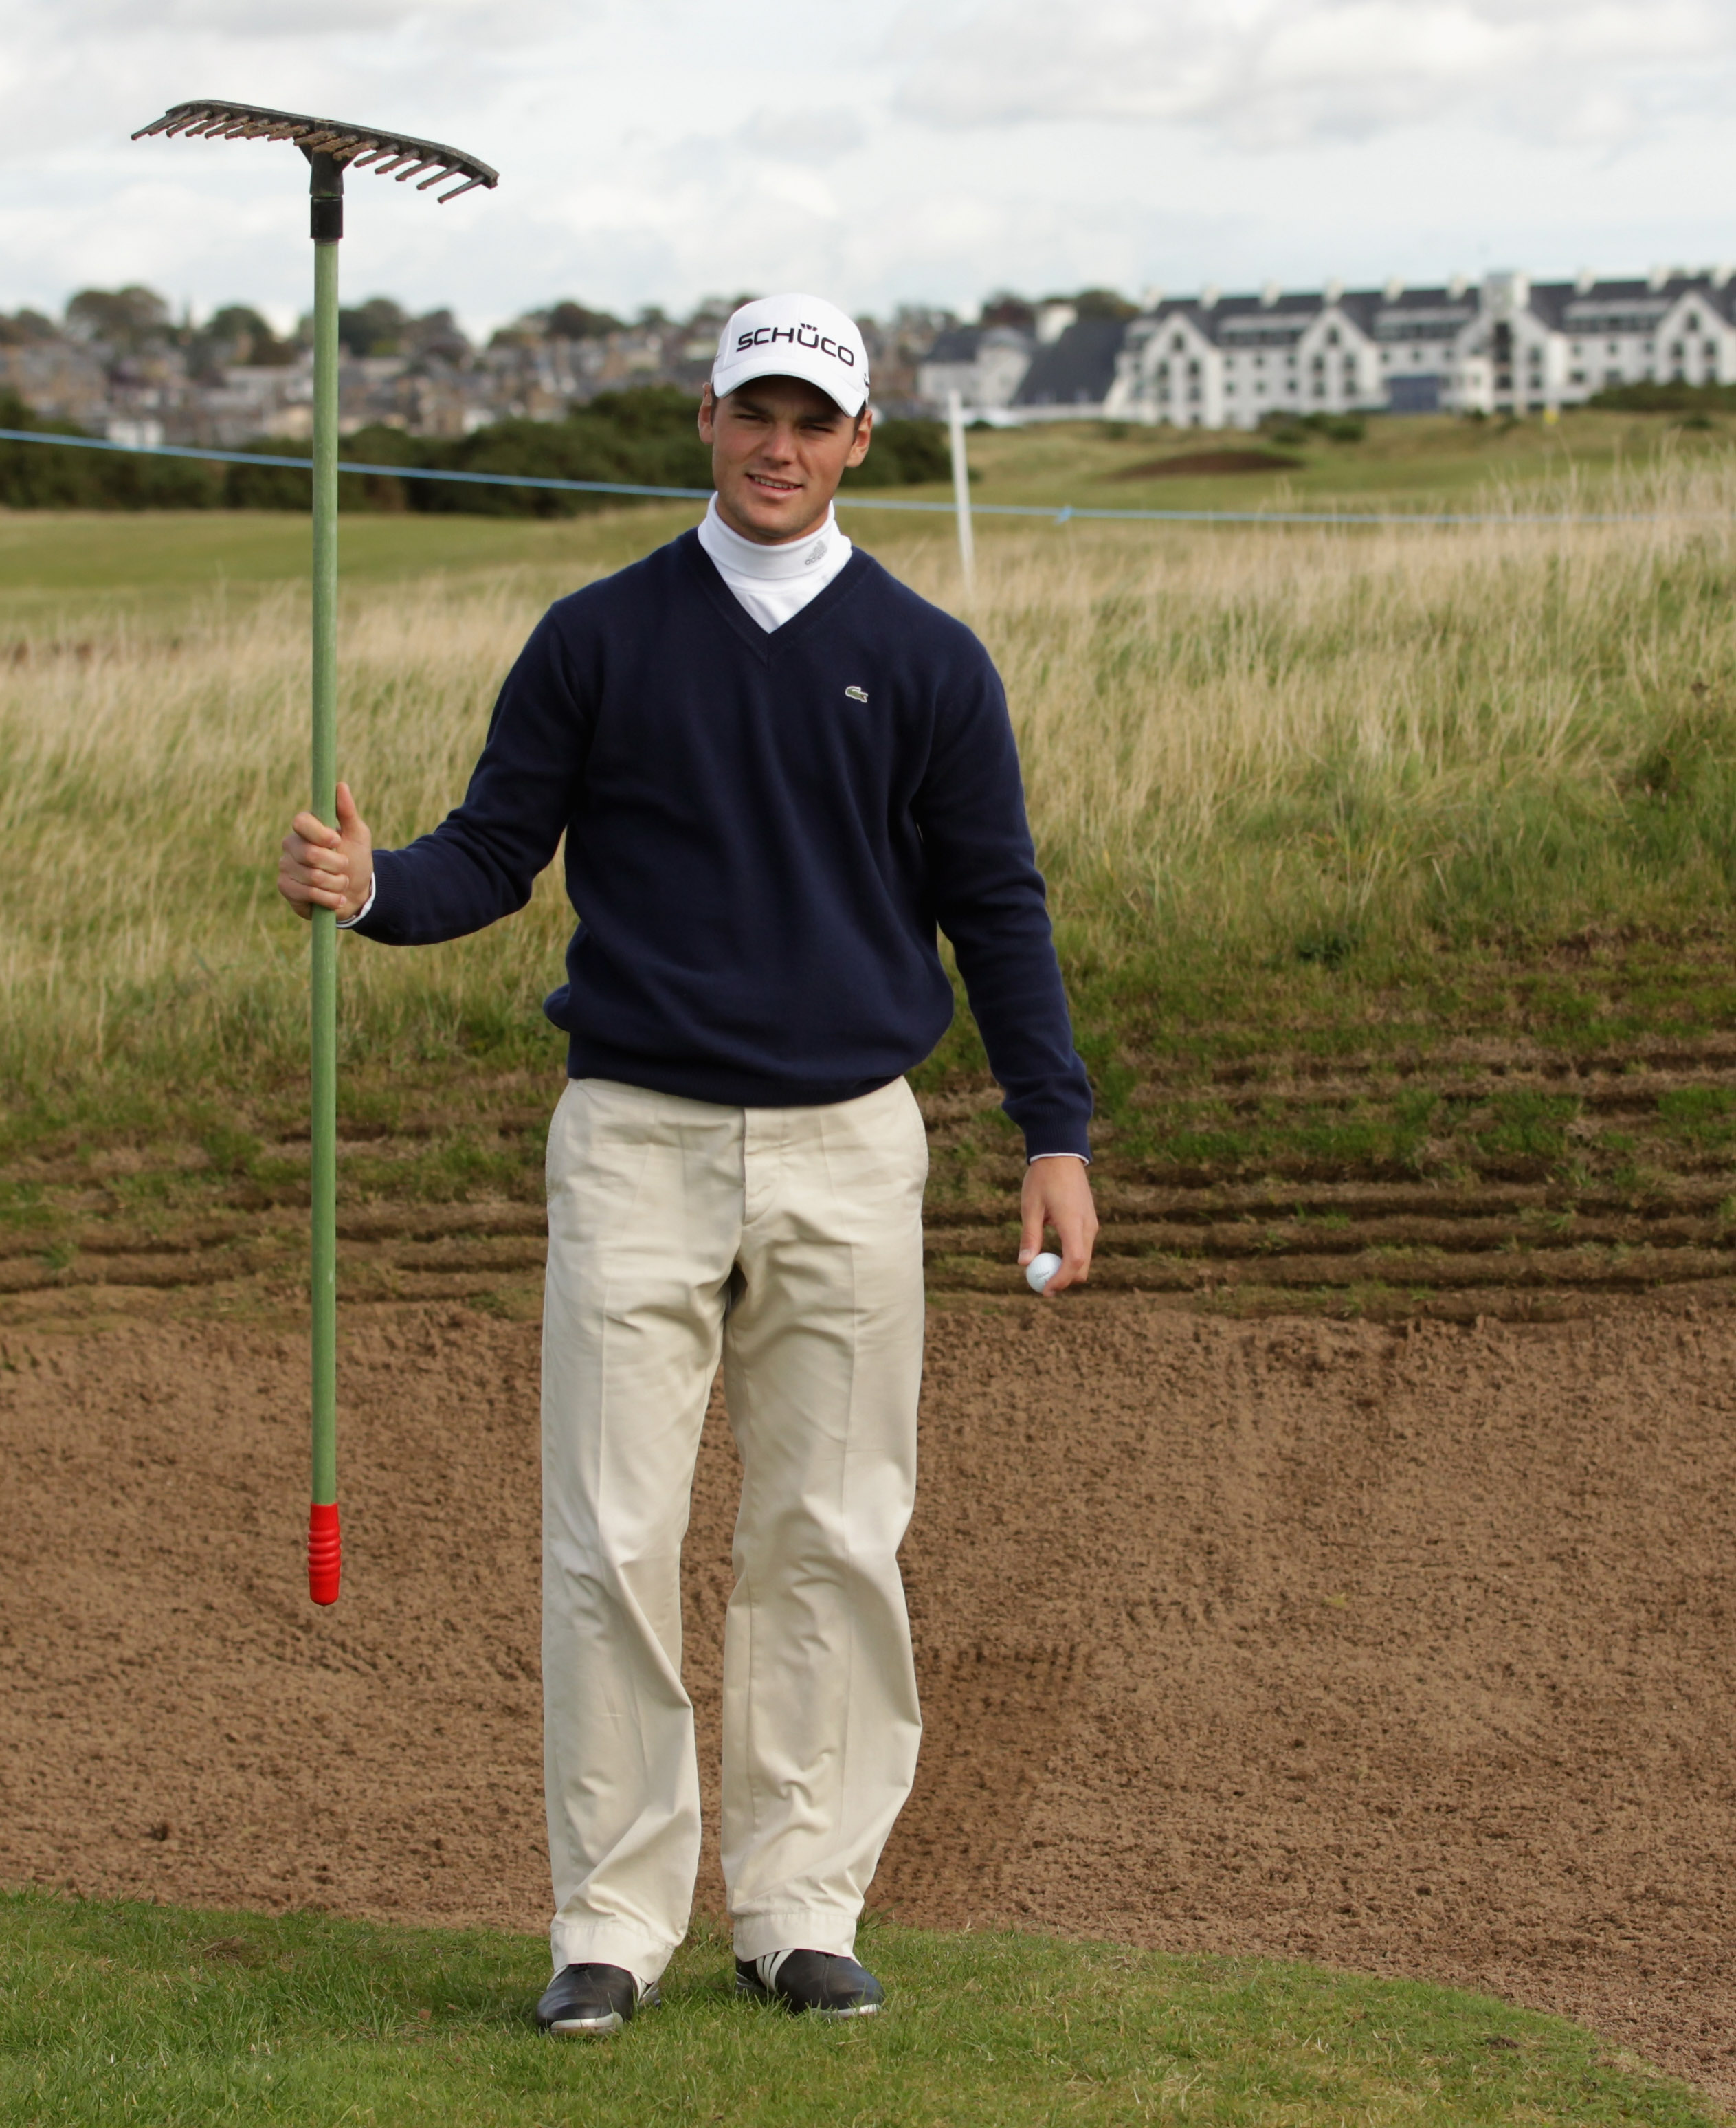 CARNOUSTIE, SCOTLAND - OCTOBER 06:  Martin Kaymer of Germany holds a bunker rake during a practice round for The Alfred Dunhill Links Championship at Carnoustie Golf Links on October 6, 2010 in Carnoustie, Scotland.  (Photo by Andrew Redington/Getty Image